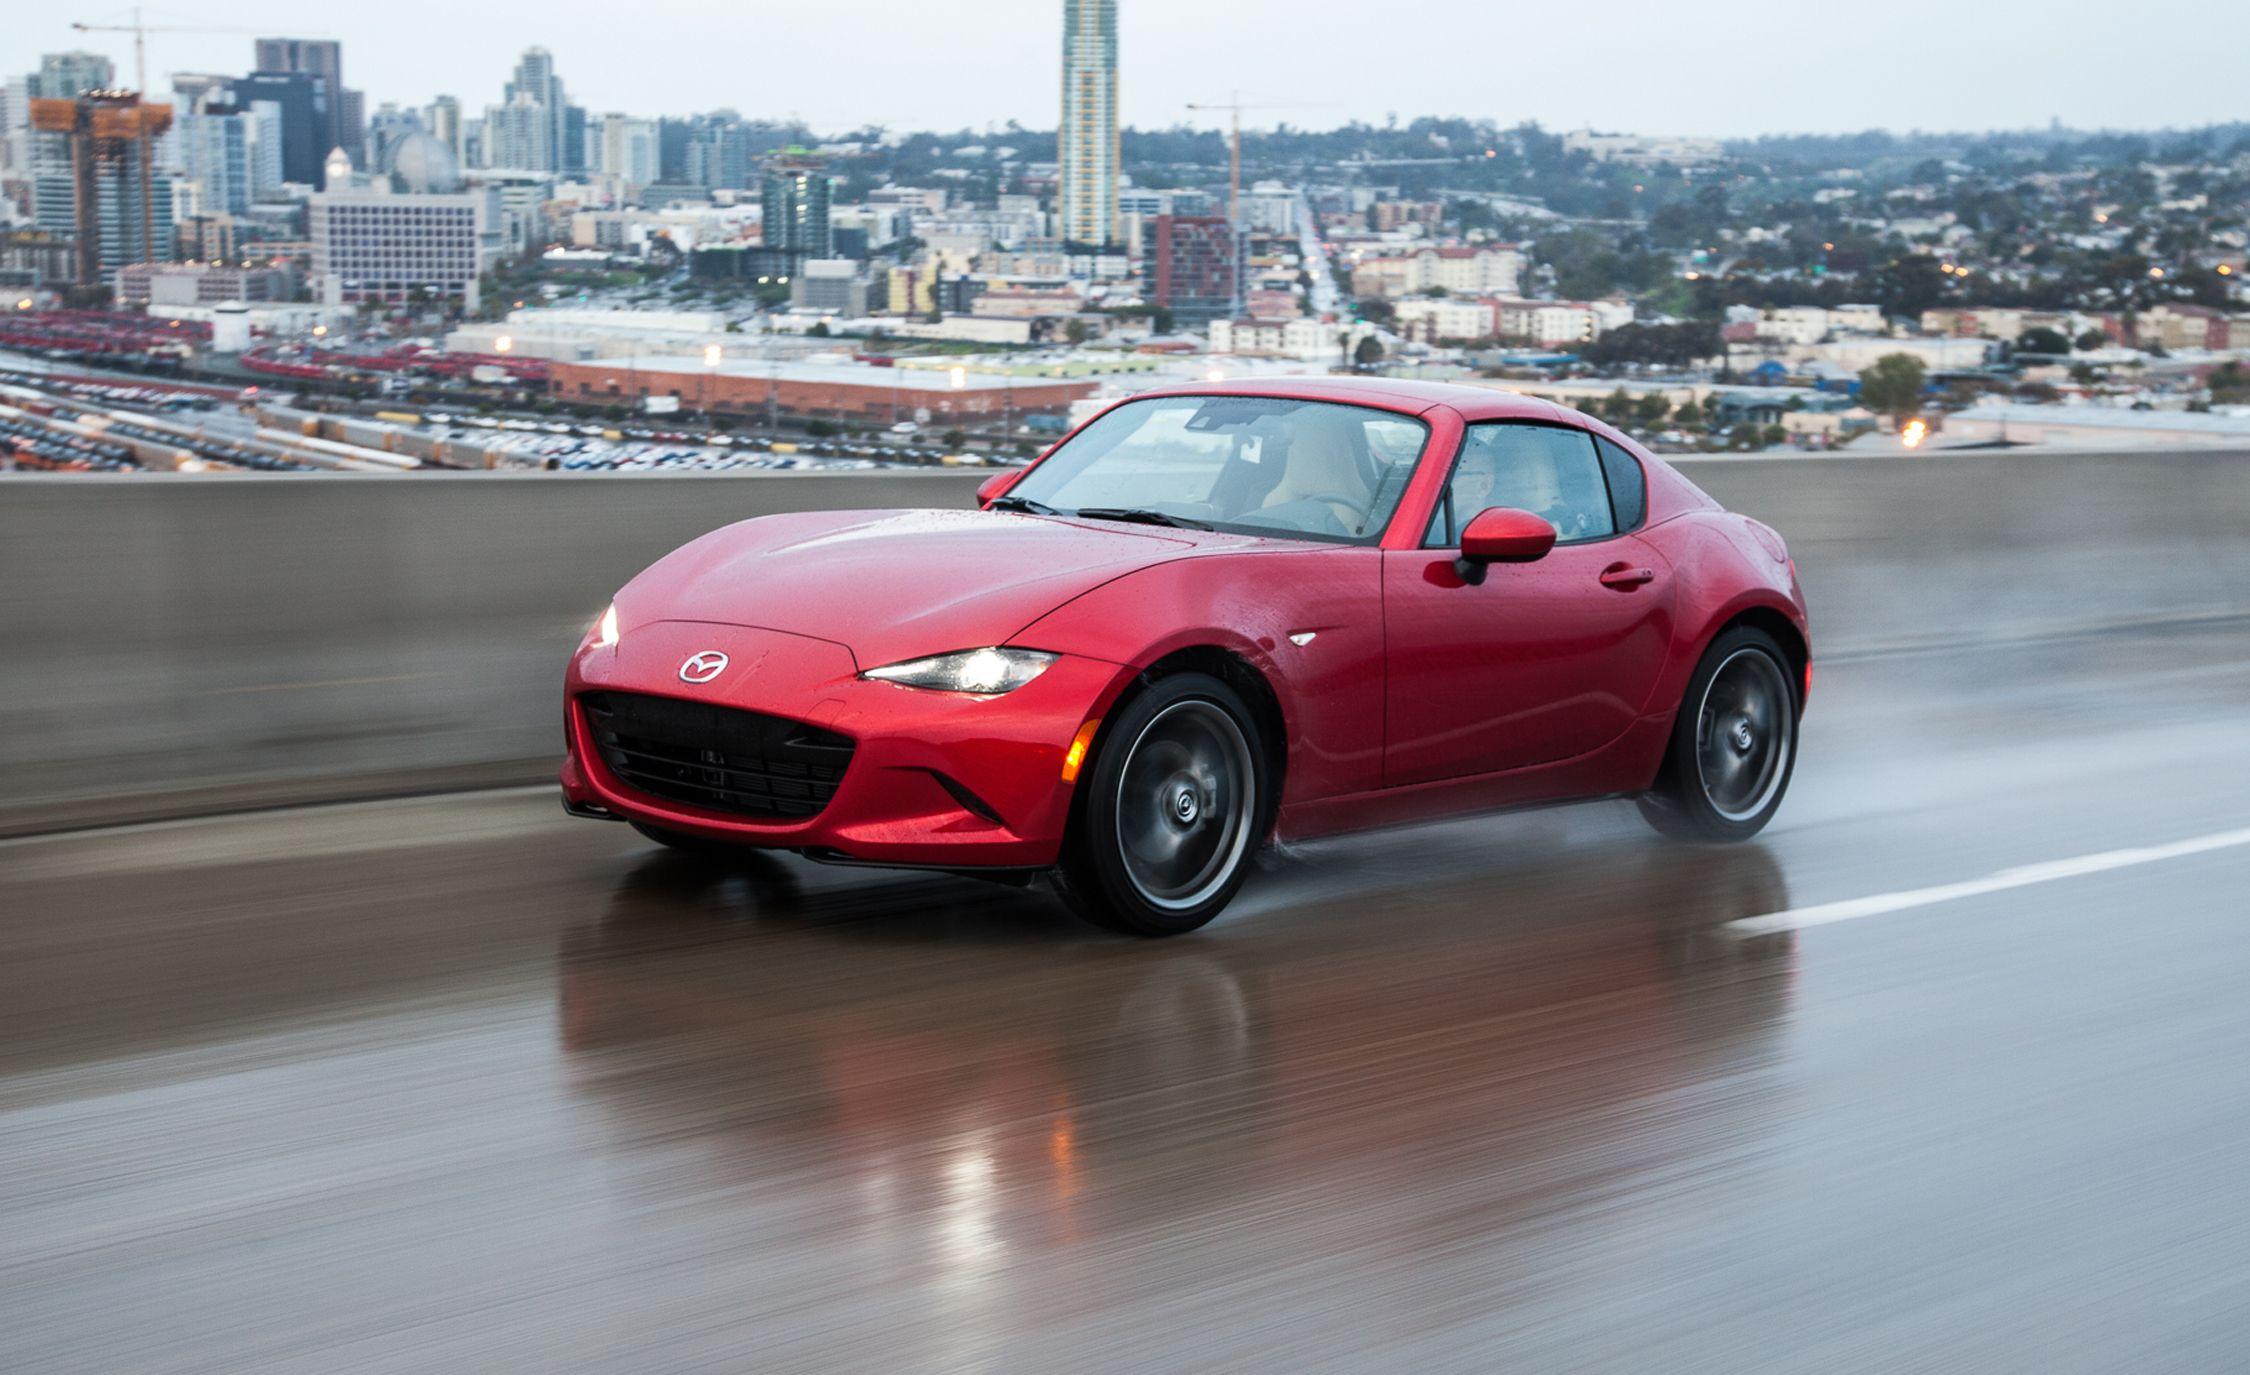 2017 Mazda MX-5 Miata Convertible Roadster | Mazda USA